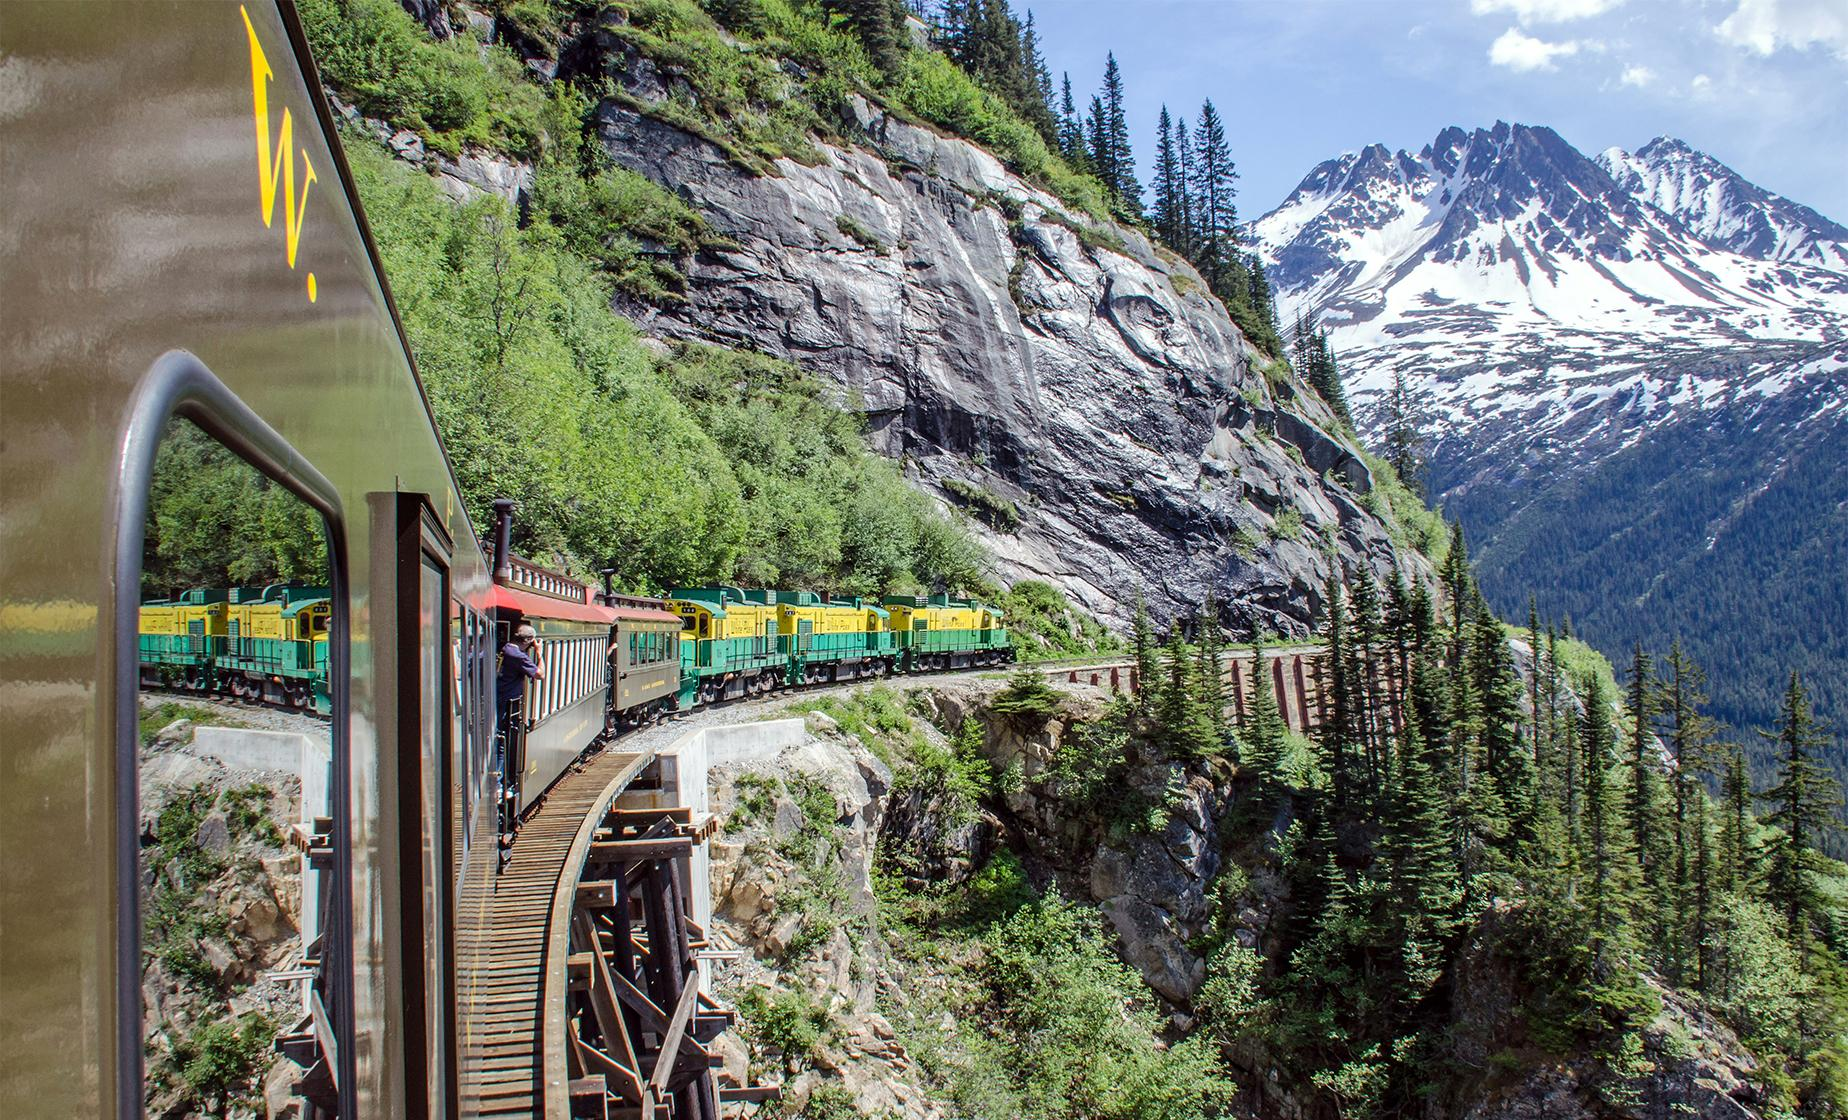 Yukon Rail and Bus Adventure